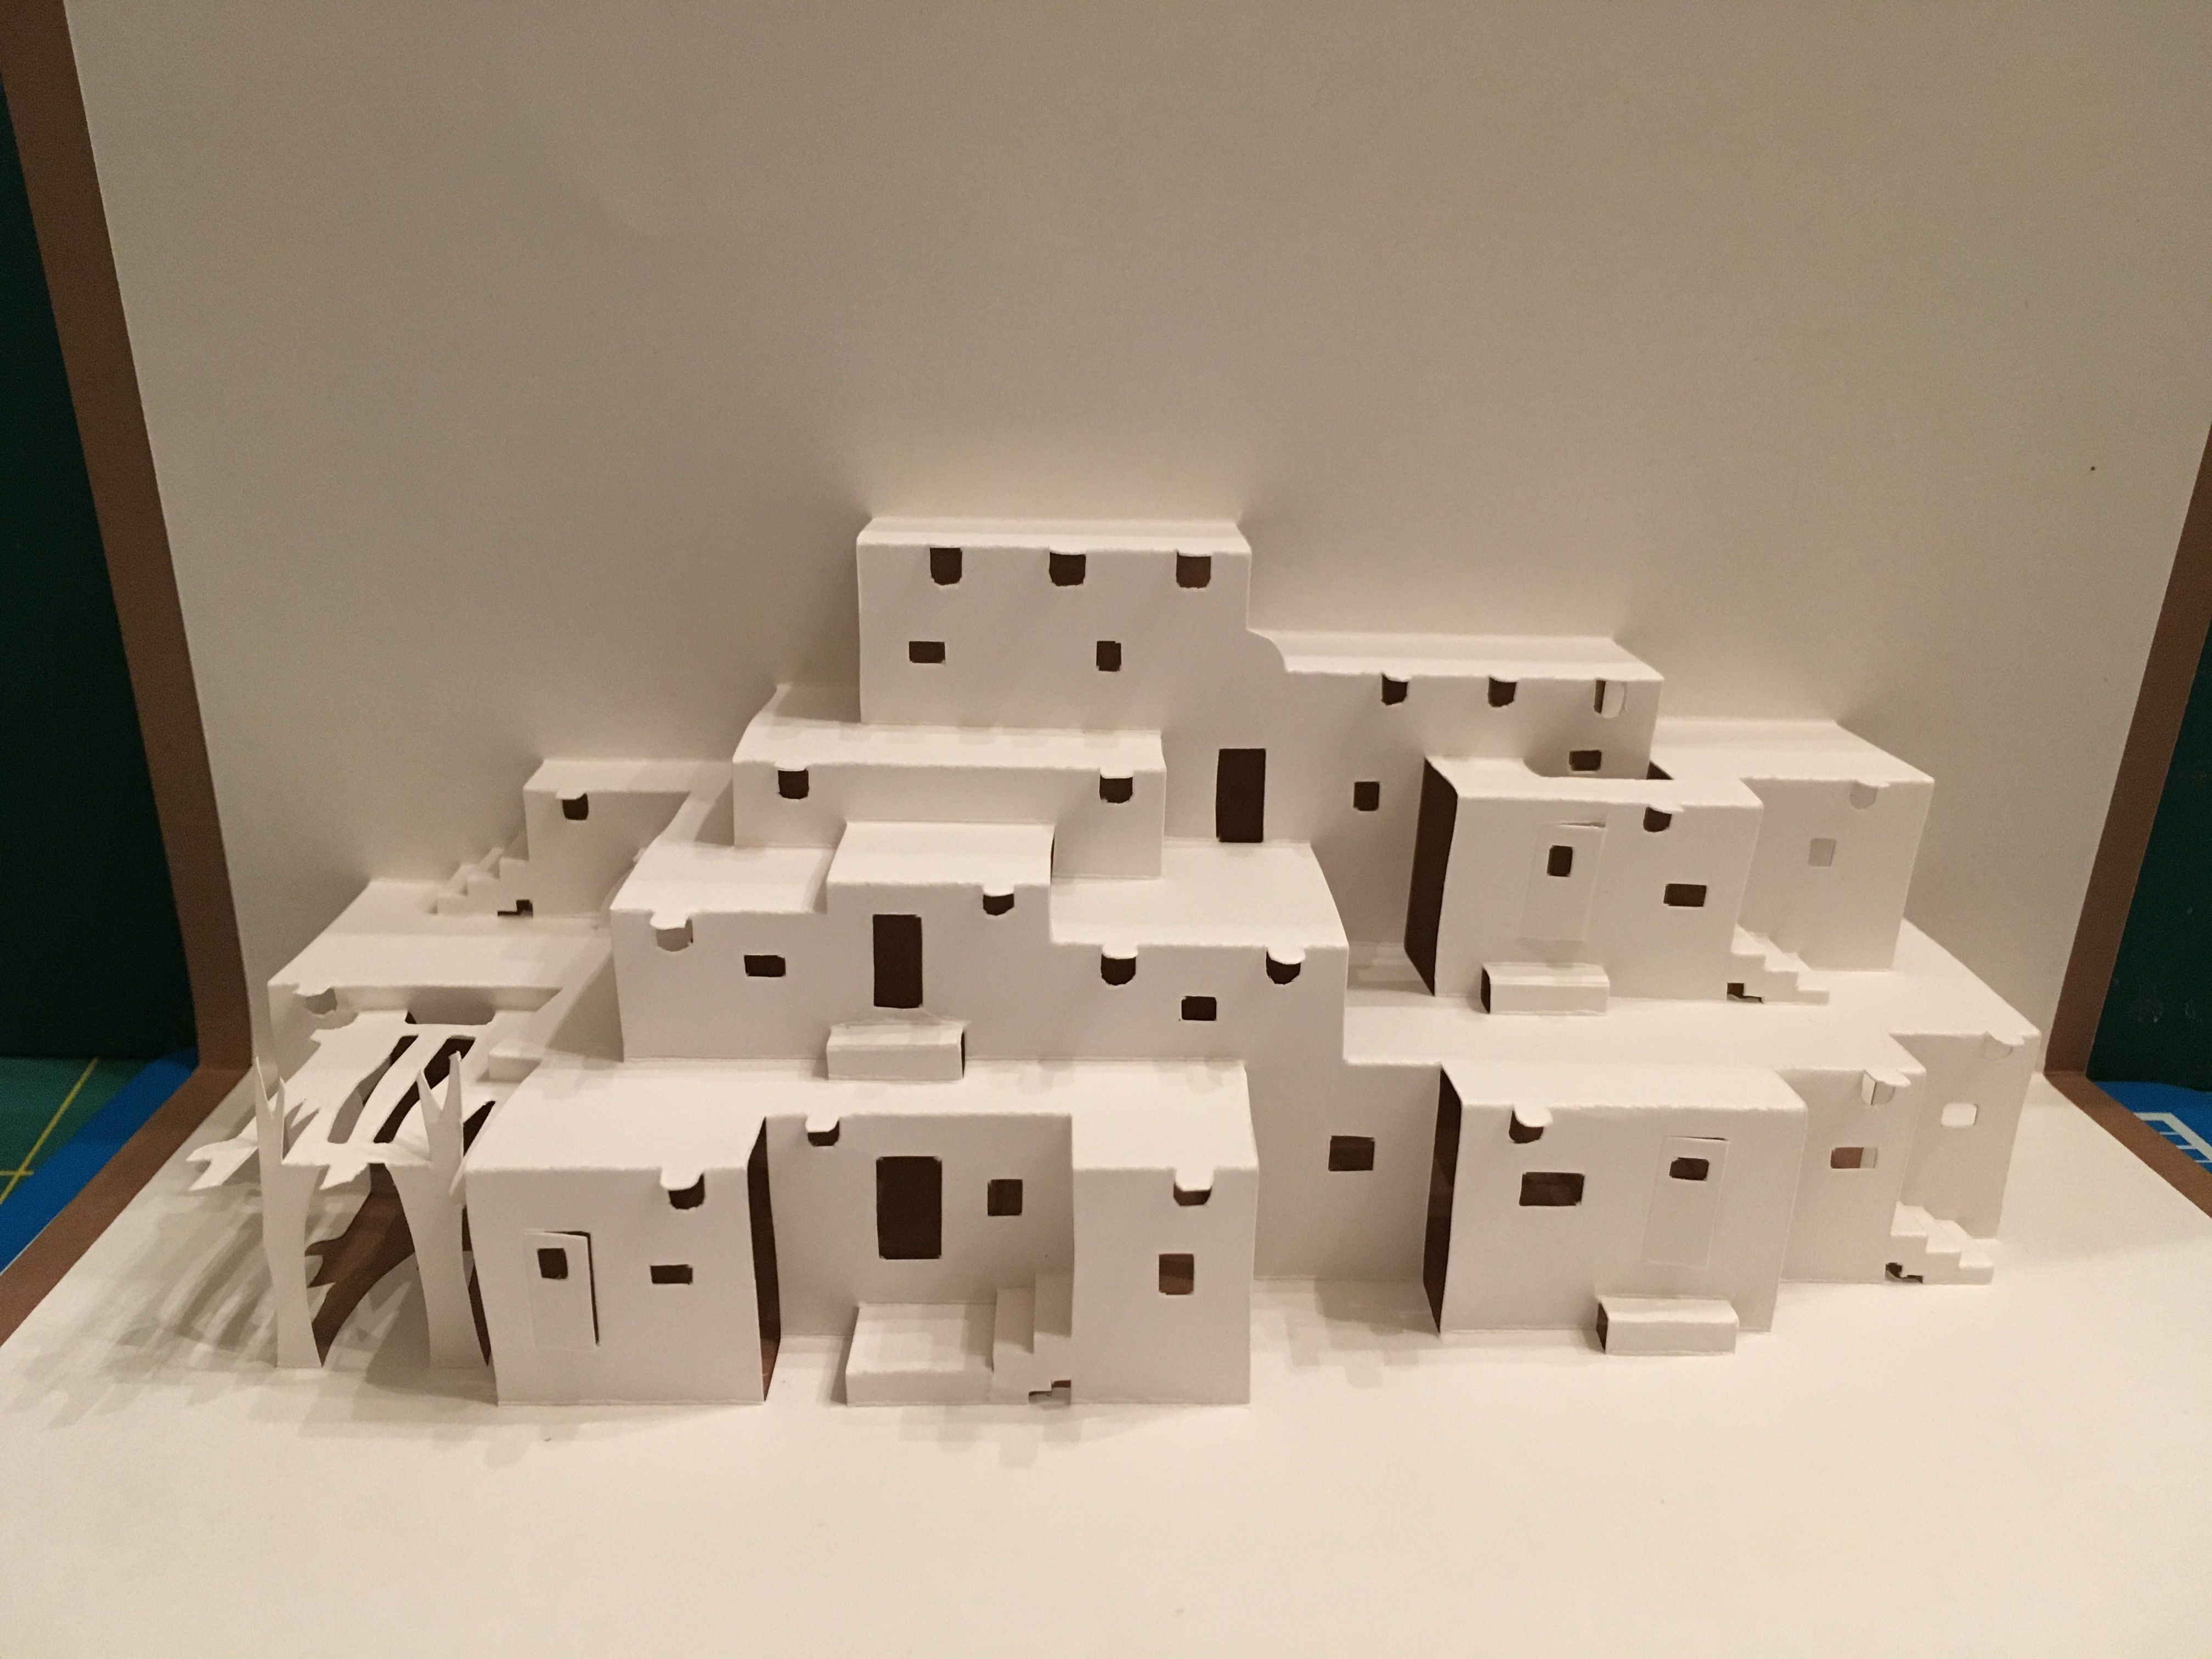 Taos Pueblo Pop Up Card Template From The Paper Architect Fold It Yourself Buildings And Structures Pop Up Card Templates Taos Pueblo Pueblo